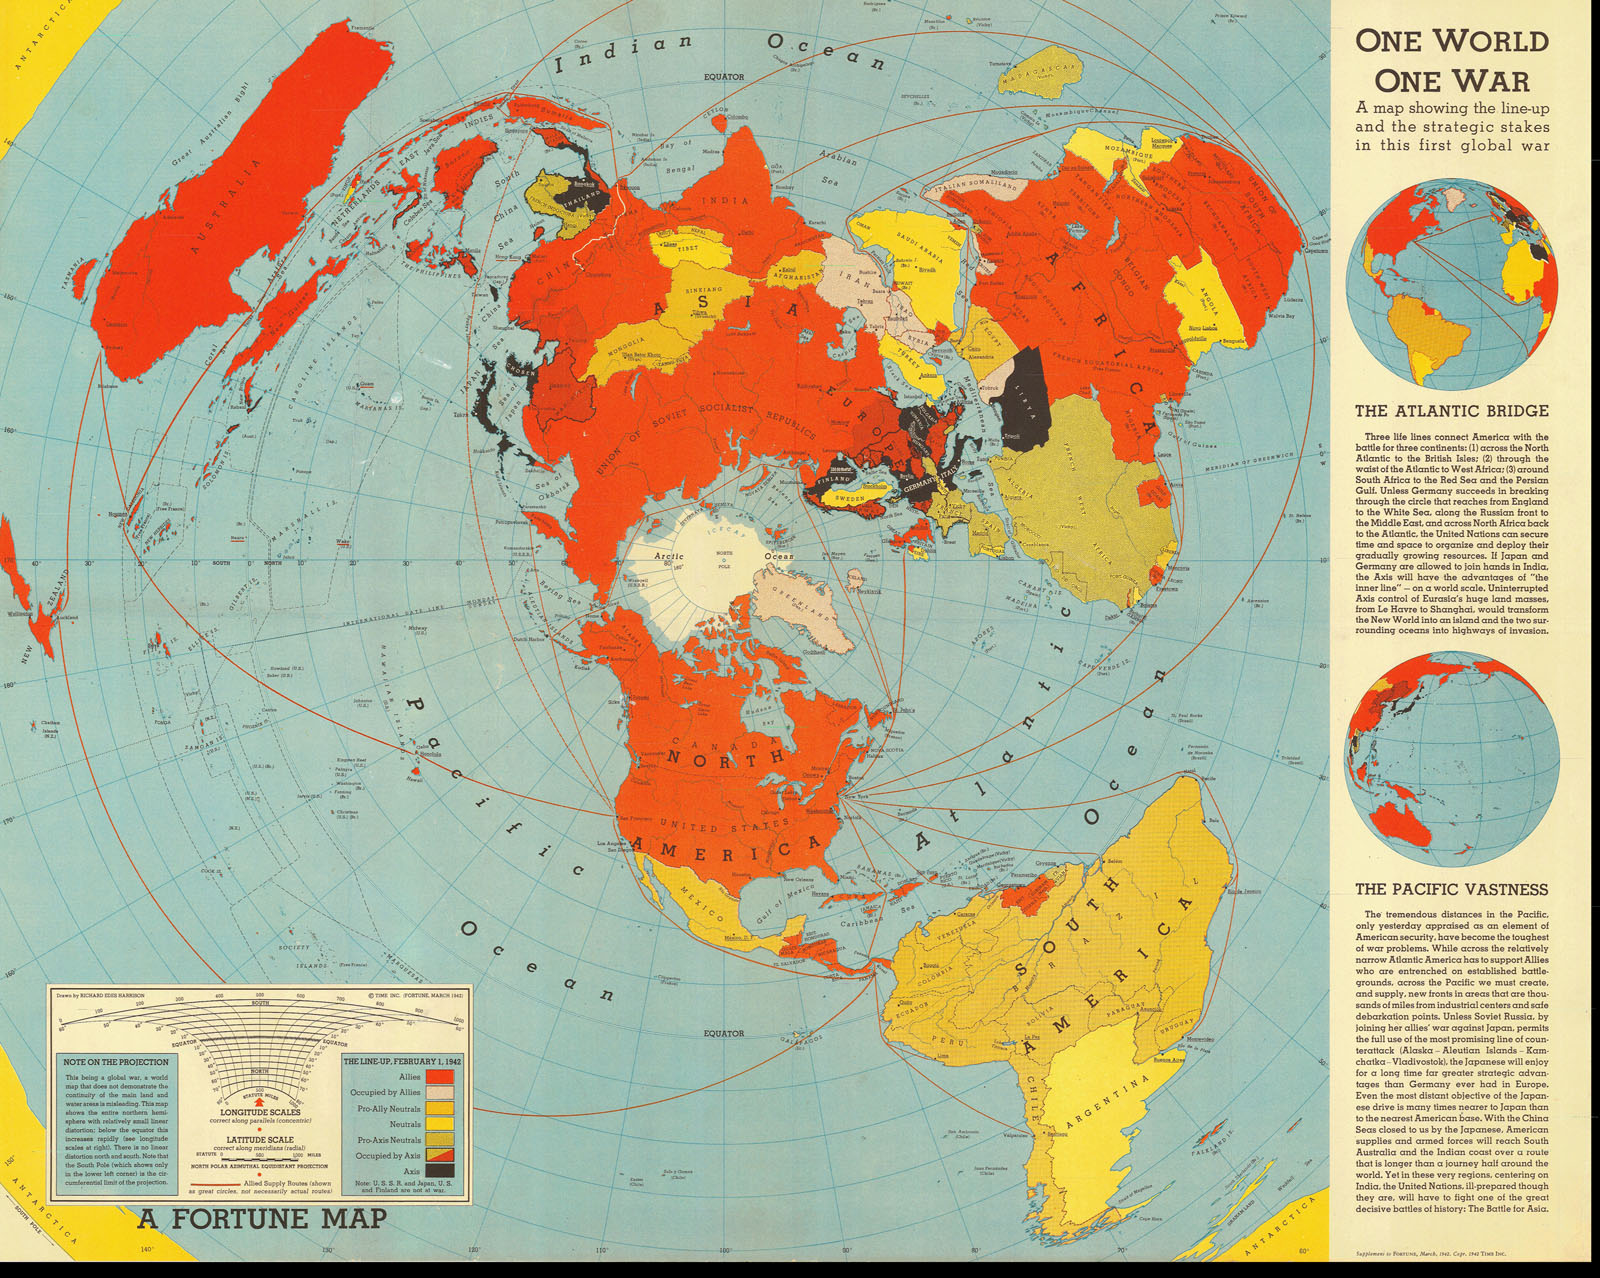 One World One War Map 1942  World  mappery